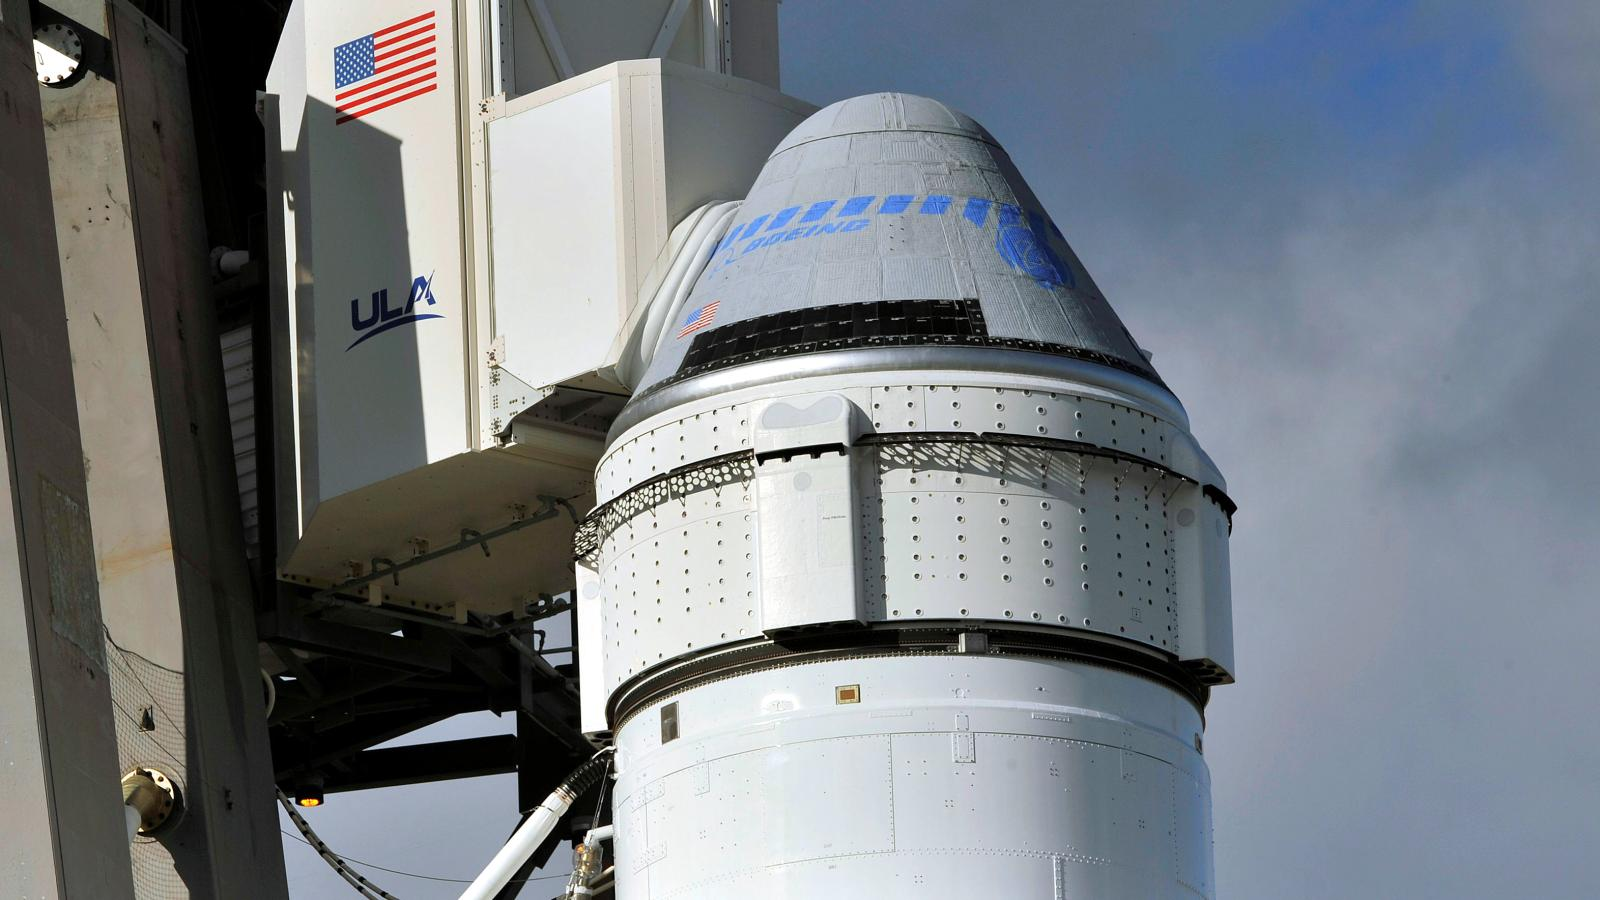 NASA and Boeing for Starliner's Uncrewed Flight Test to International Space Station